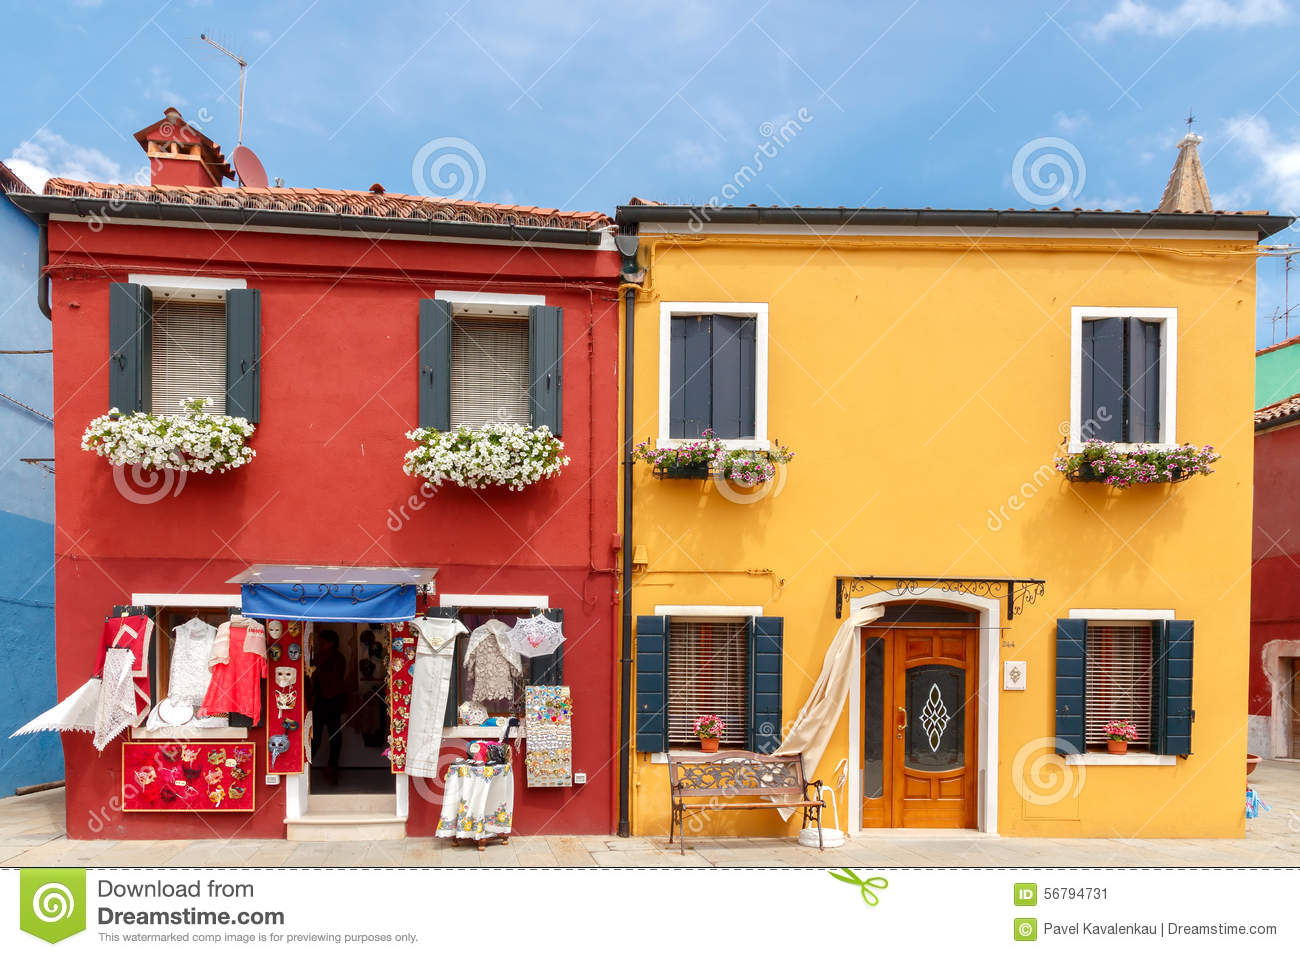 Colorful burano italy burano tourism - Burano Houses On The Water Editorial Photo